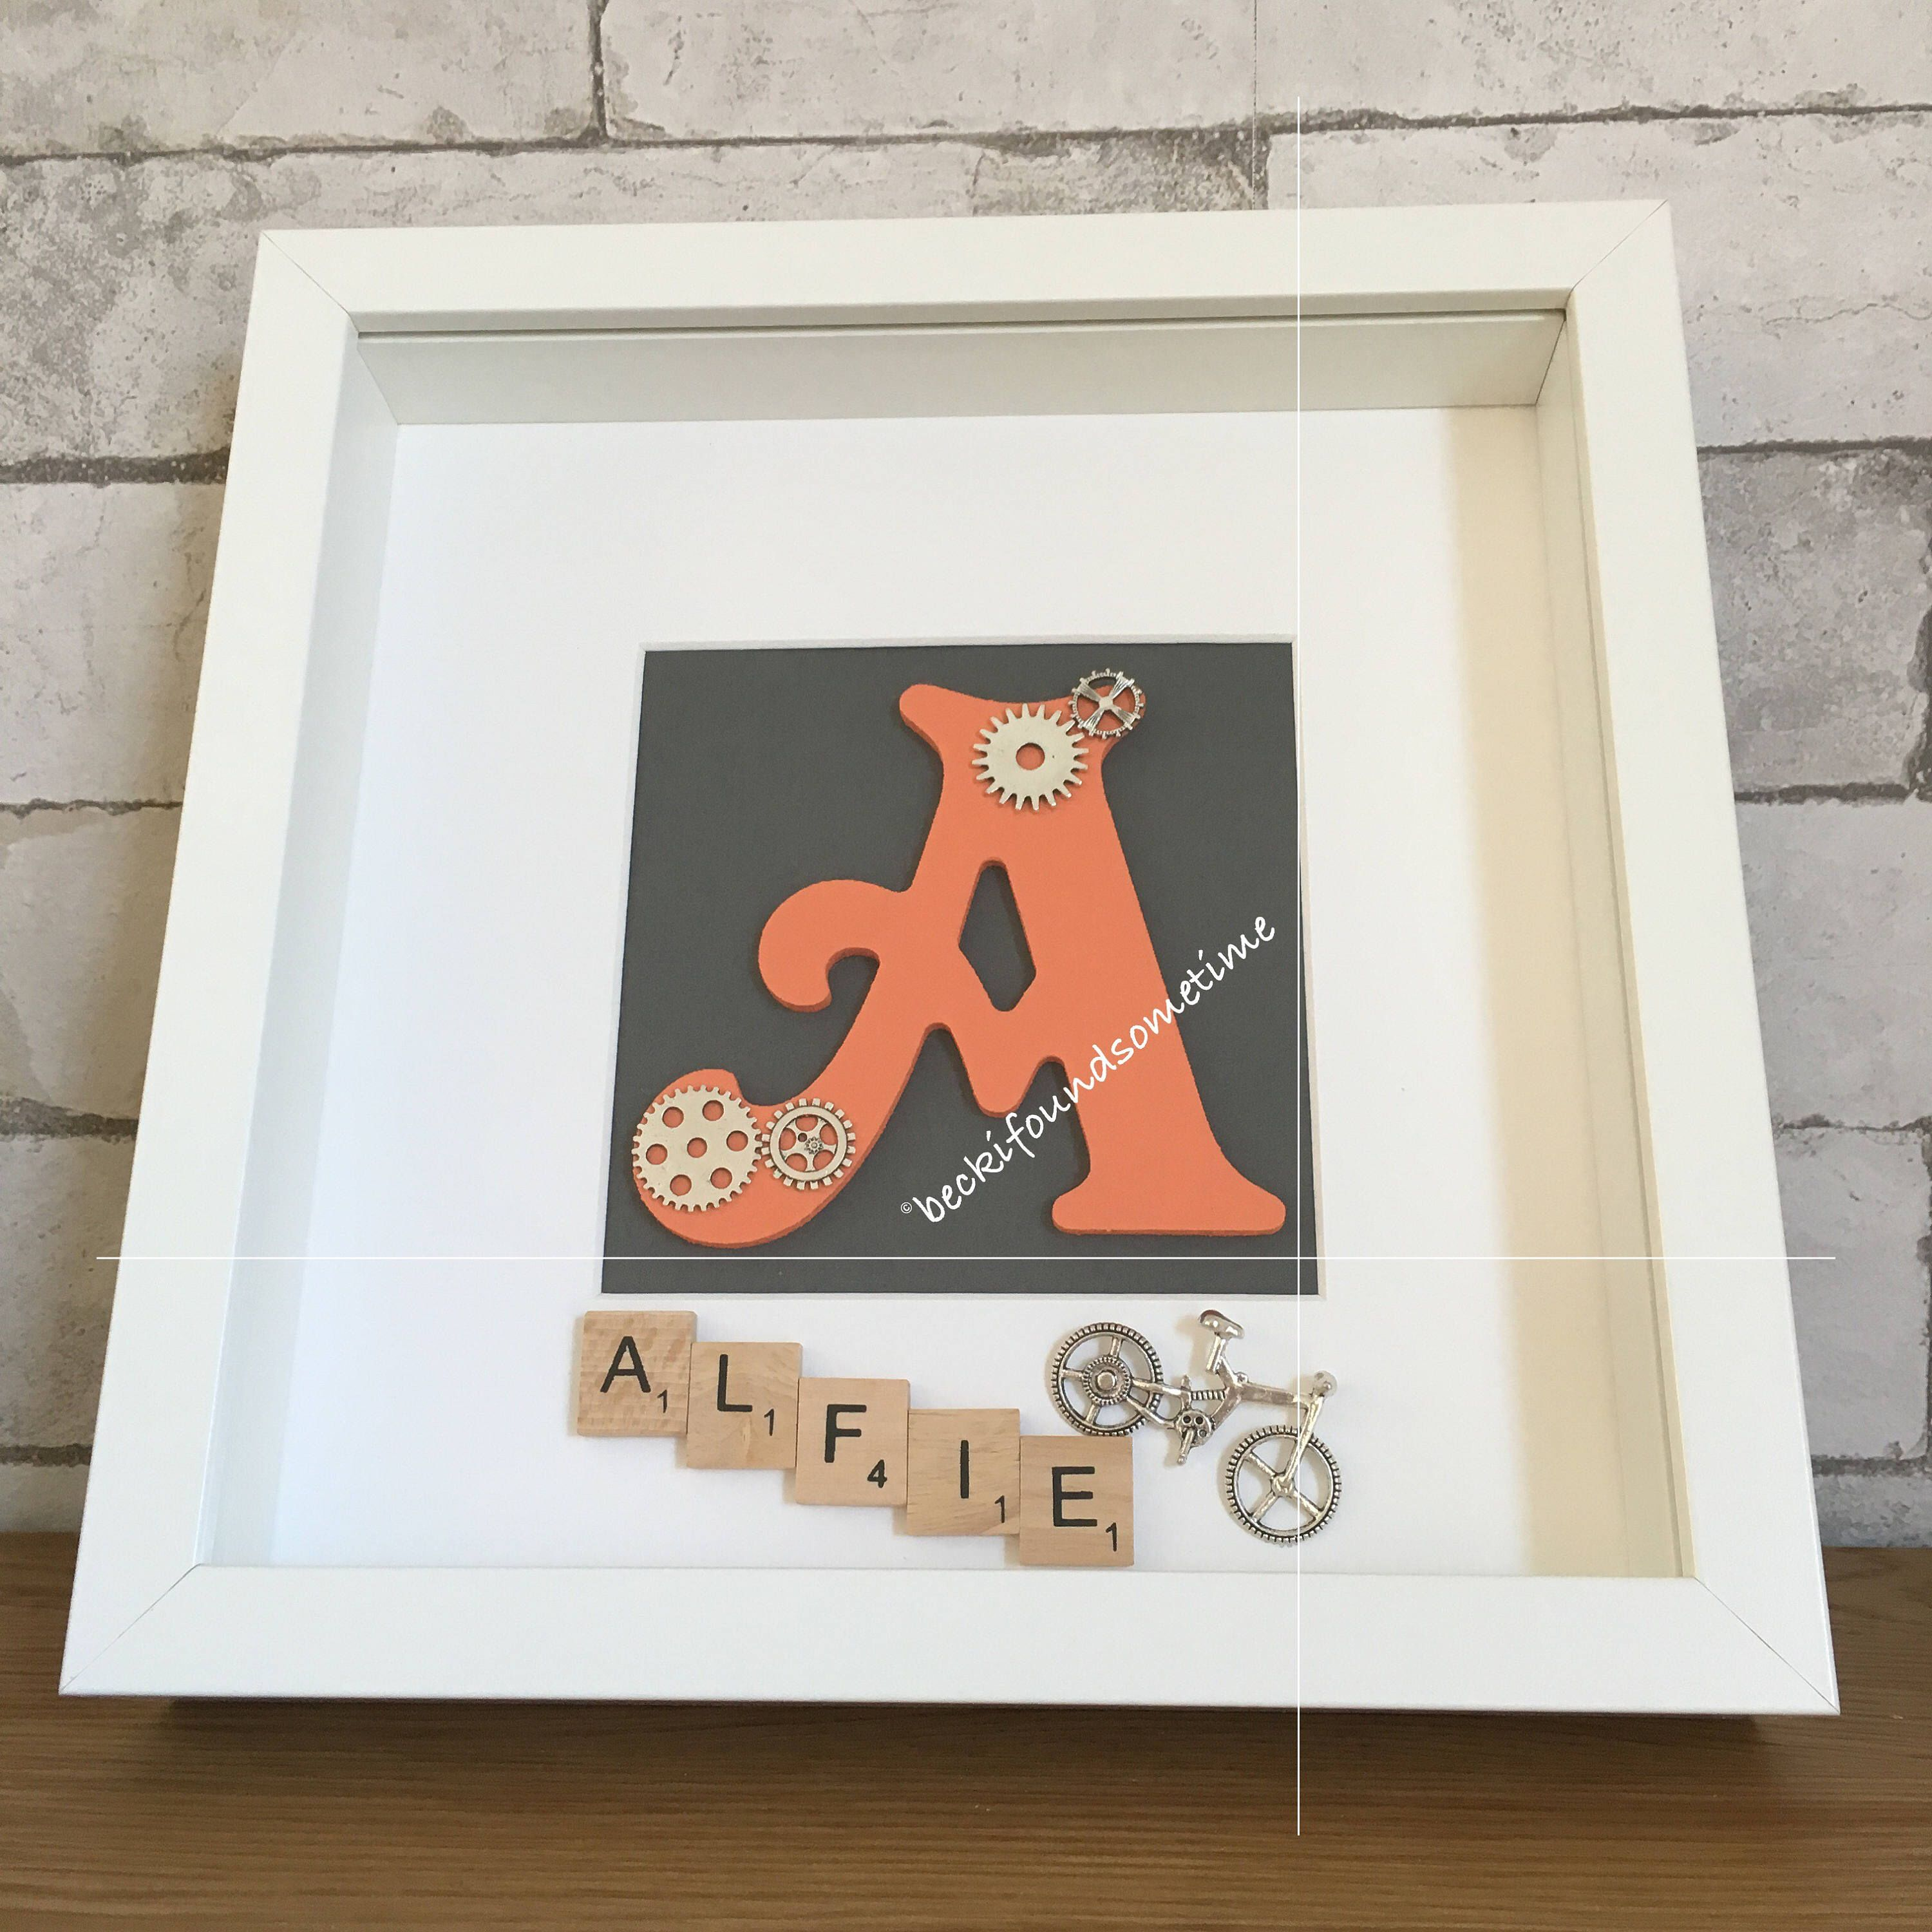 Pin by Becki Found Some Time on Frames   Gifts   Keepsake   Gifts ...